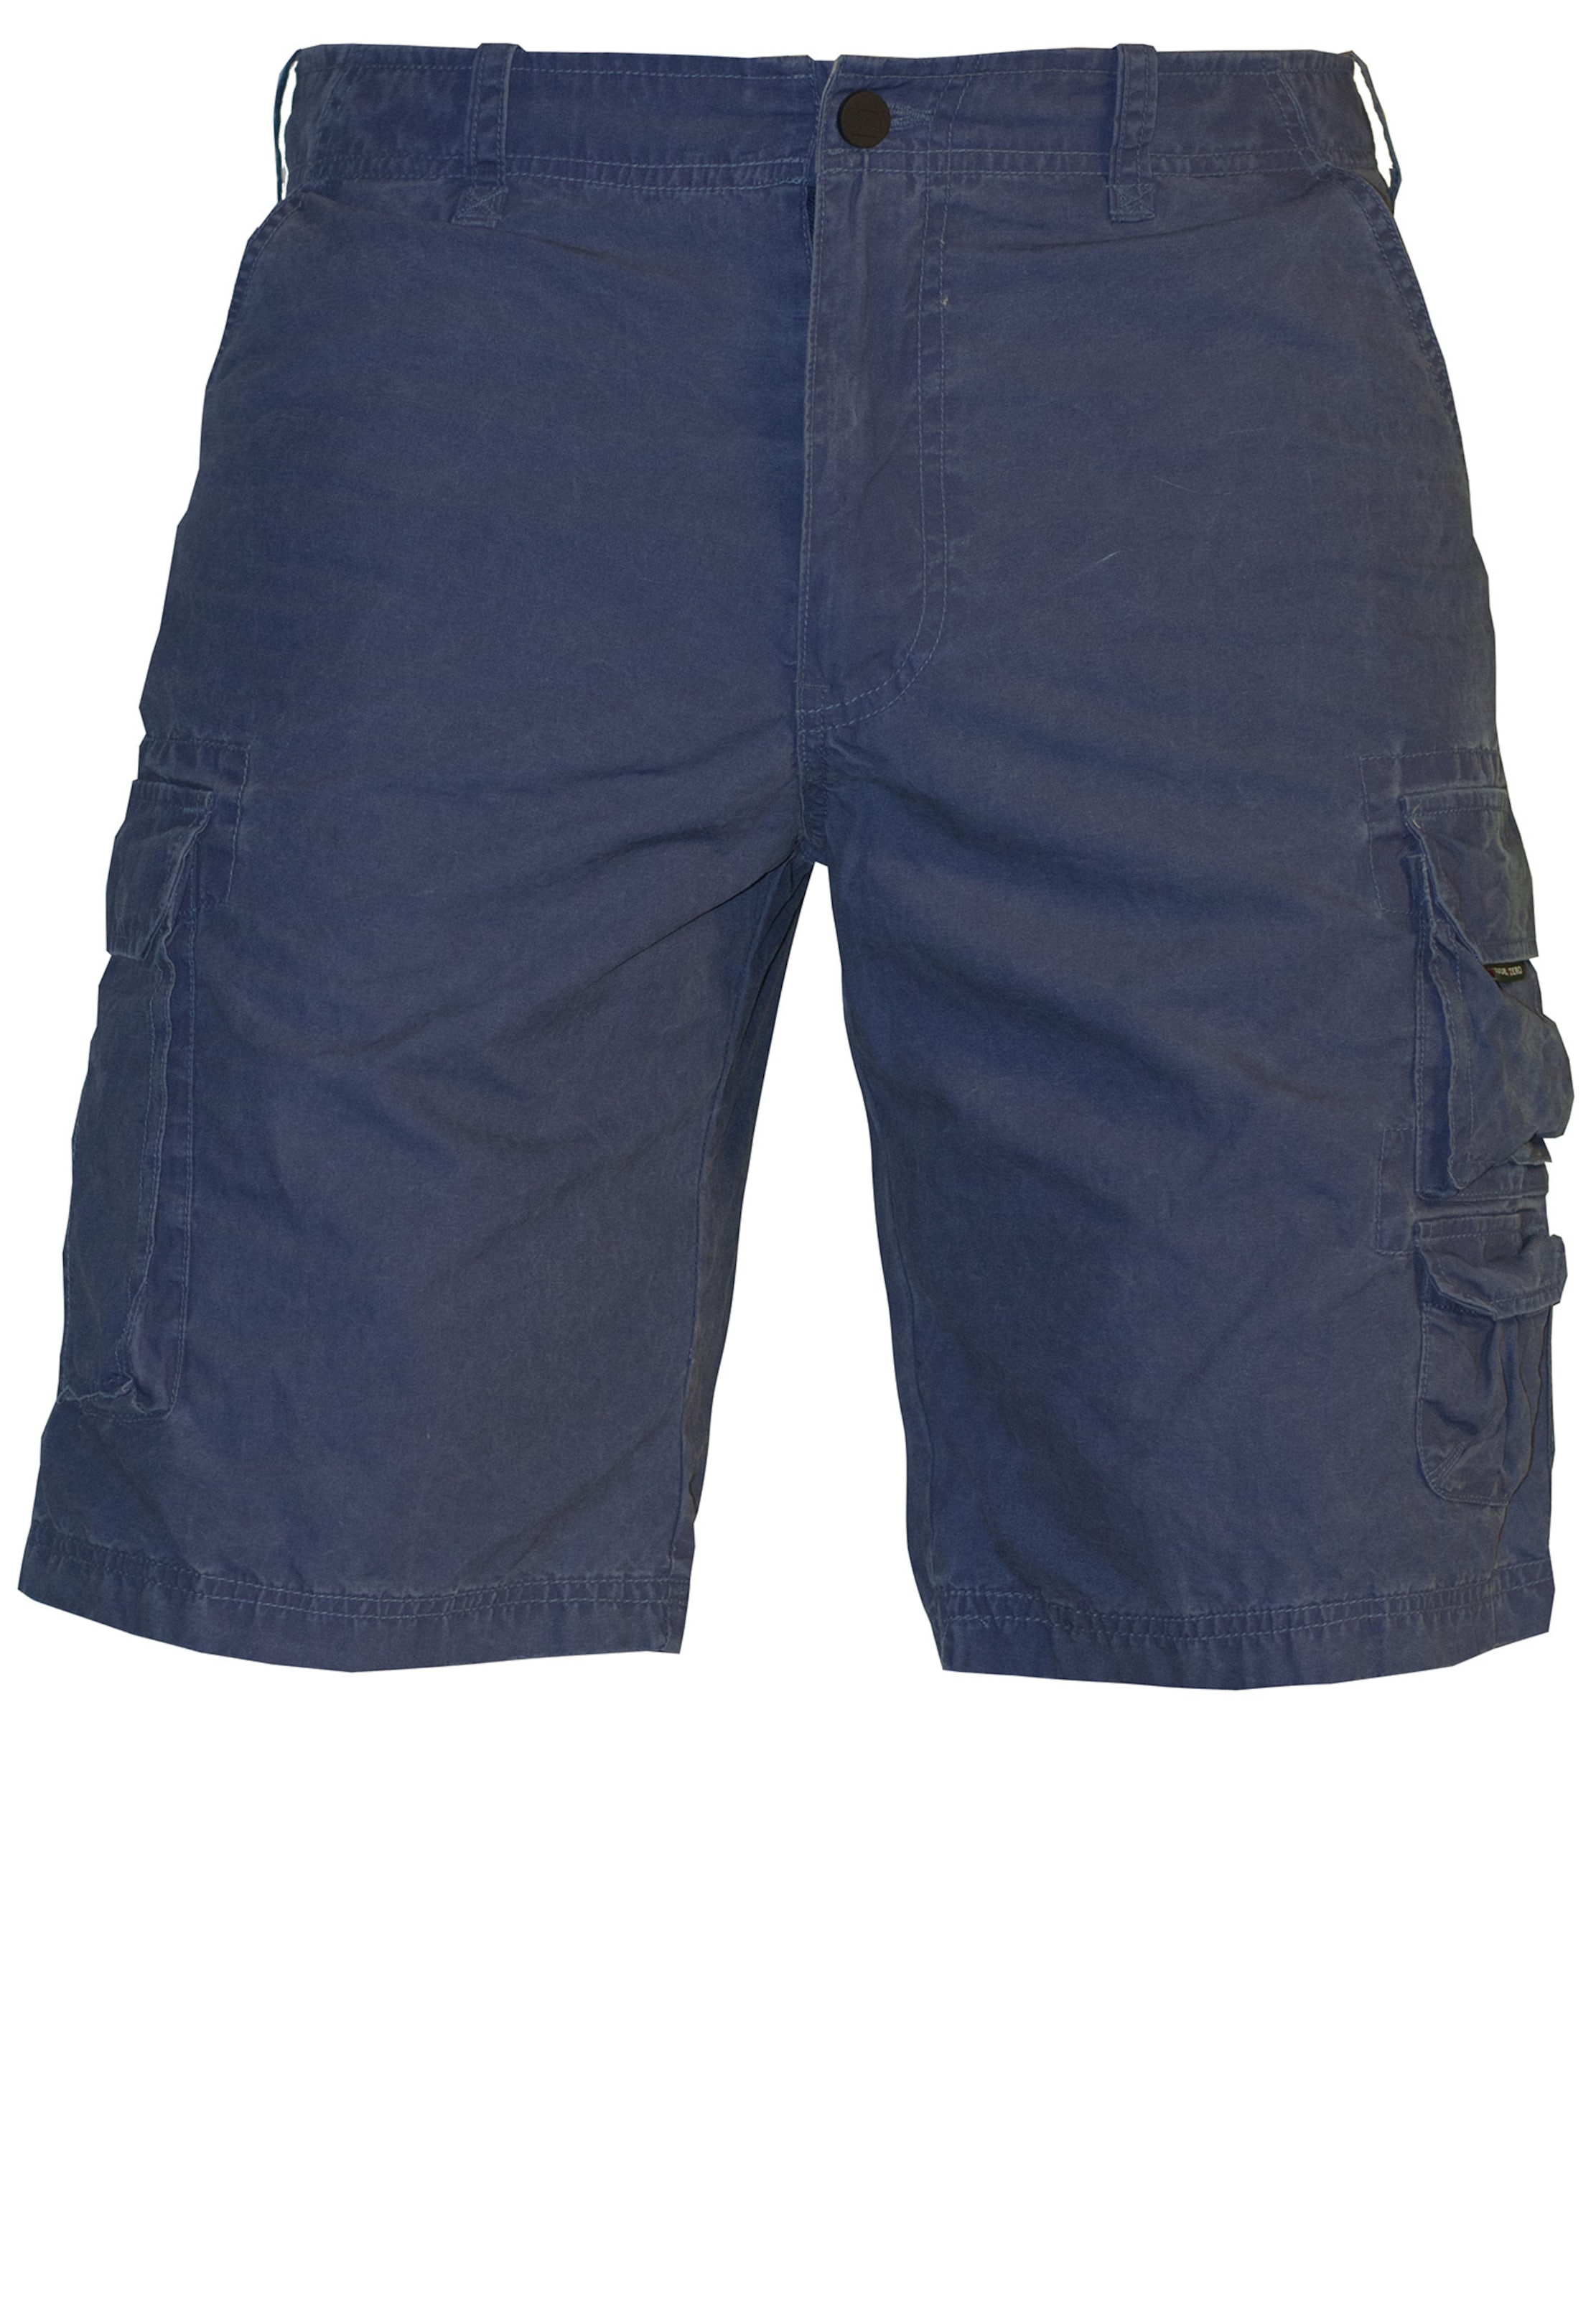 Code Shorts zero Navy In 'rudder' SqVULzMGp